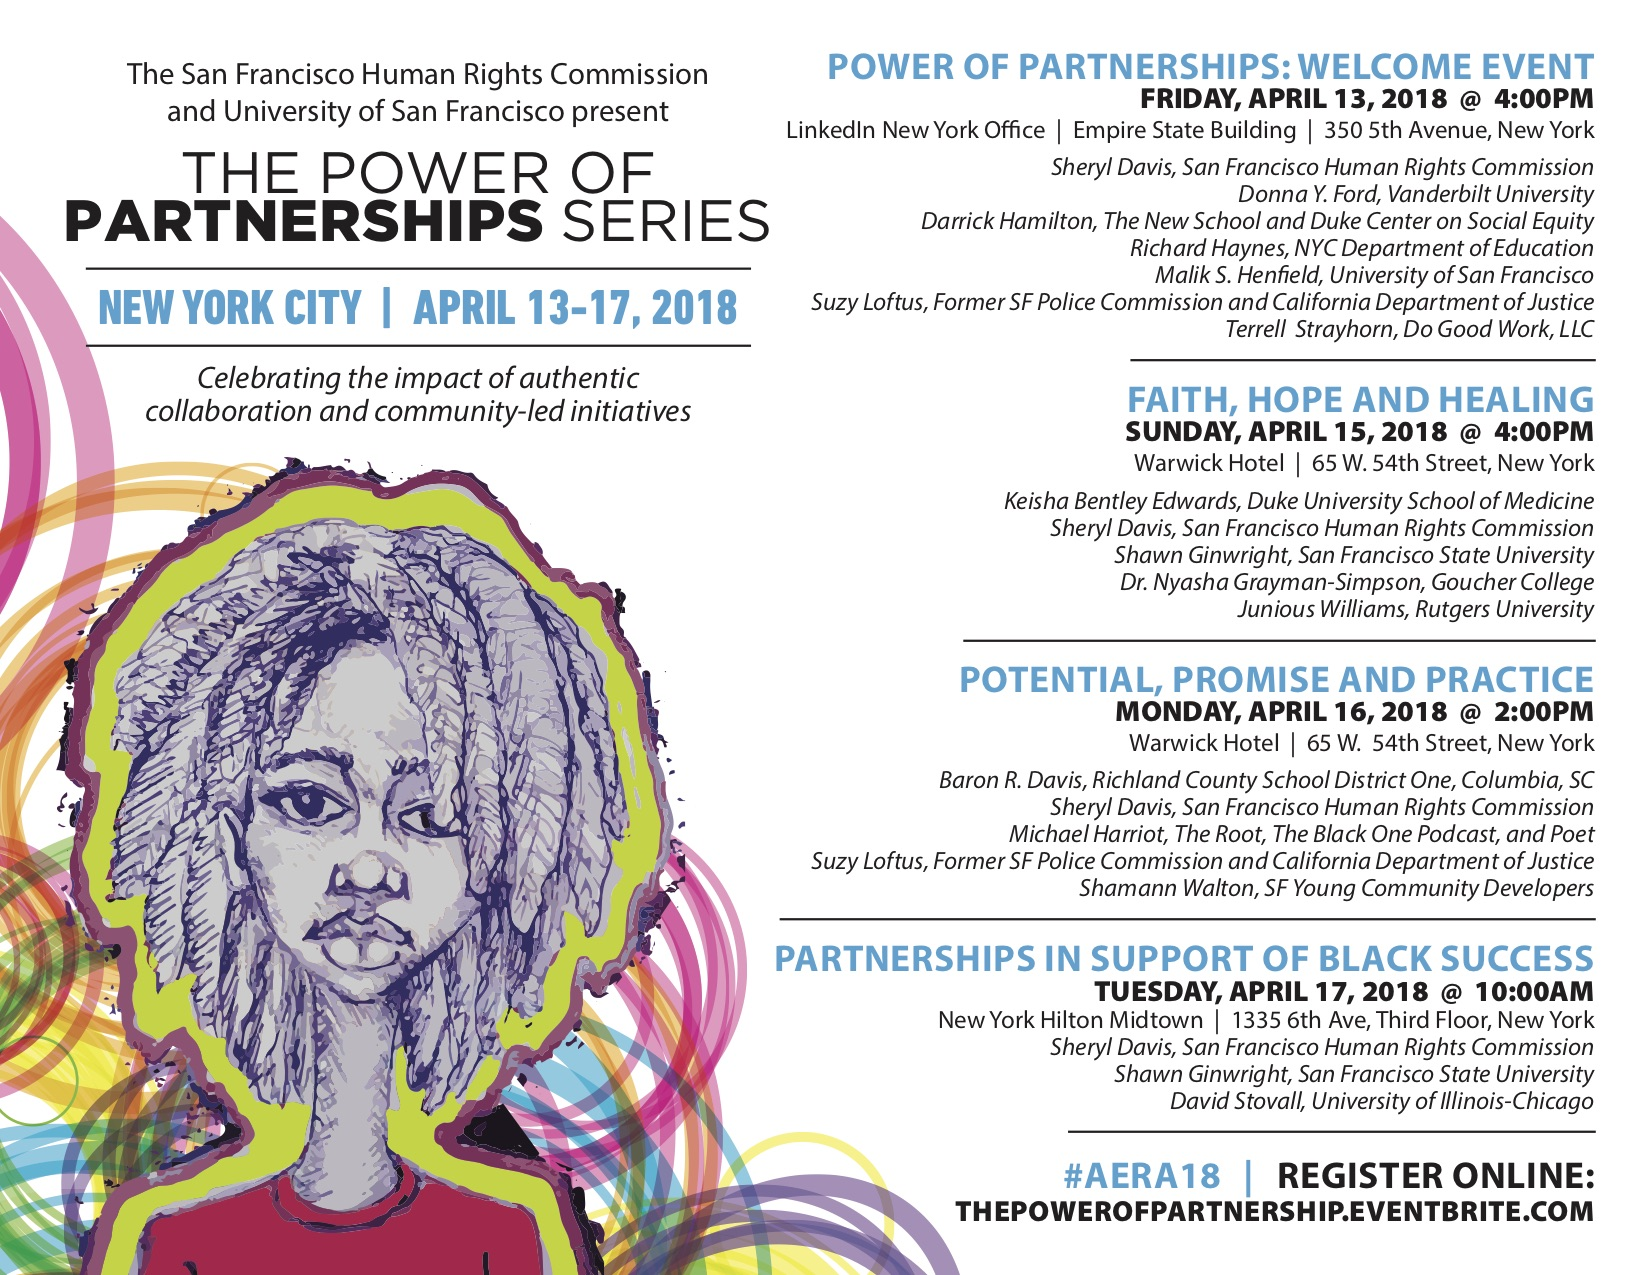 The Power of Partnership Conference | Government Alliance on